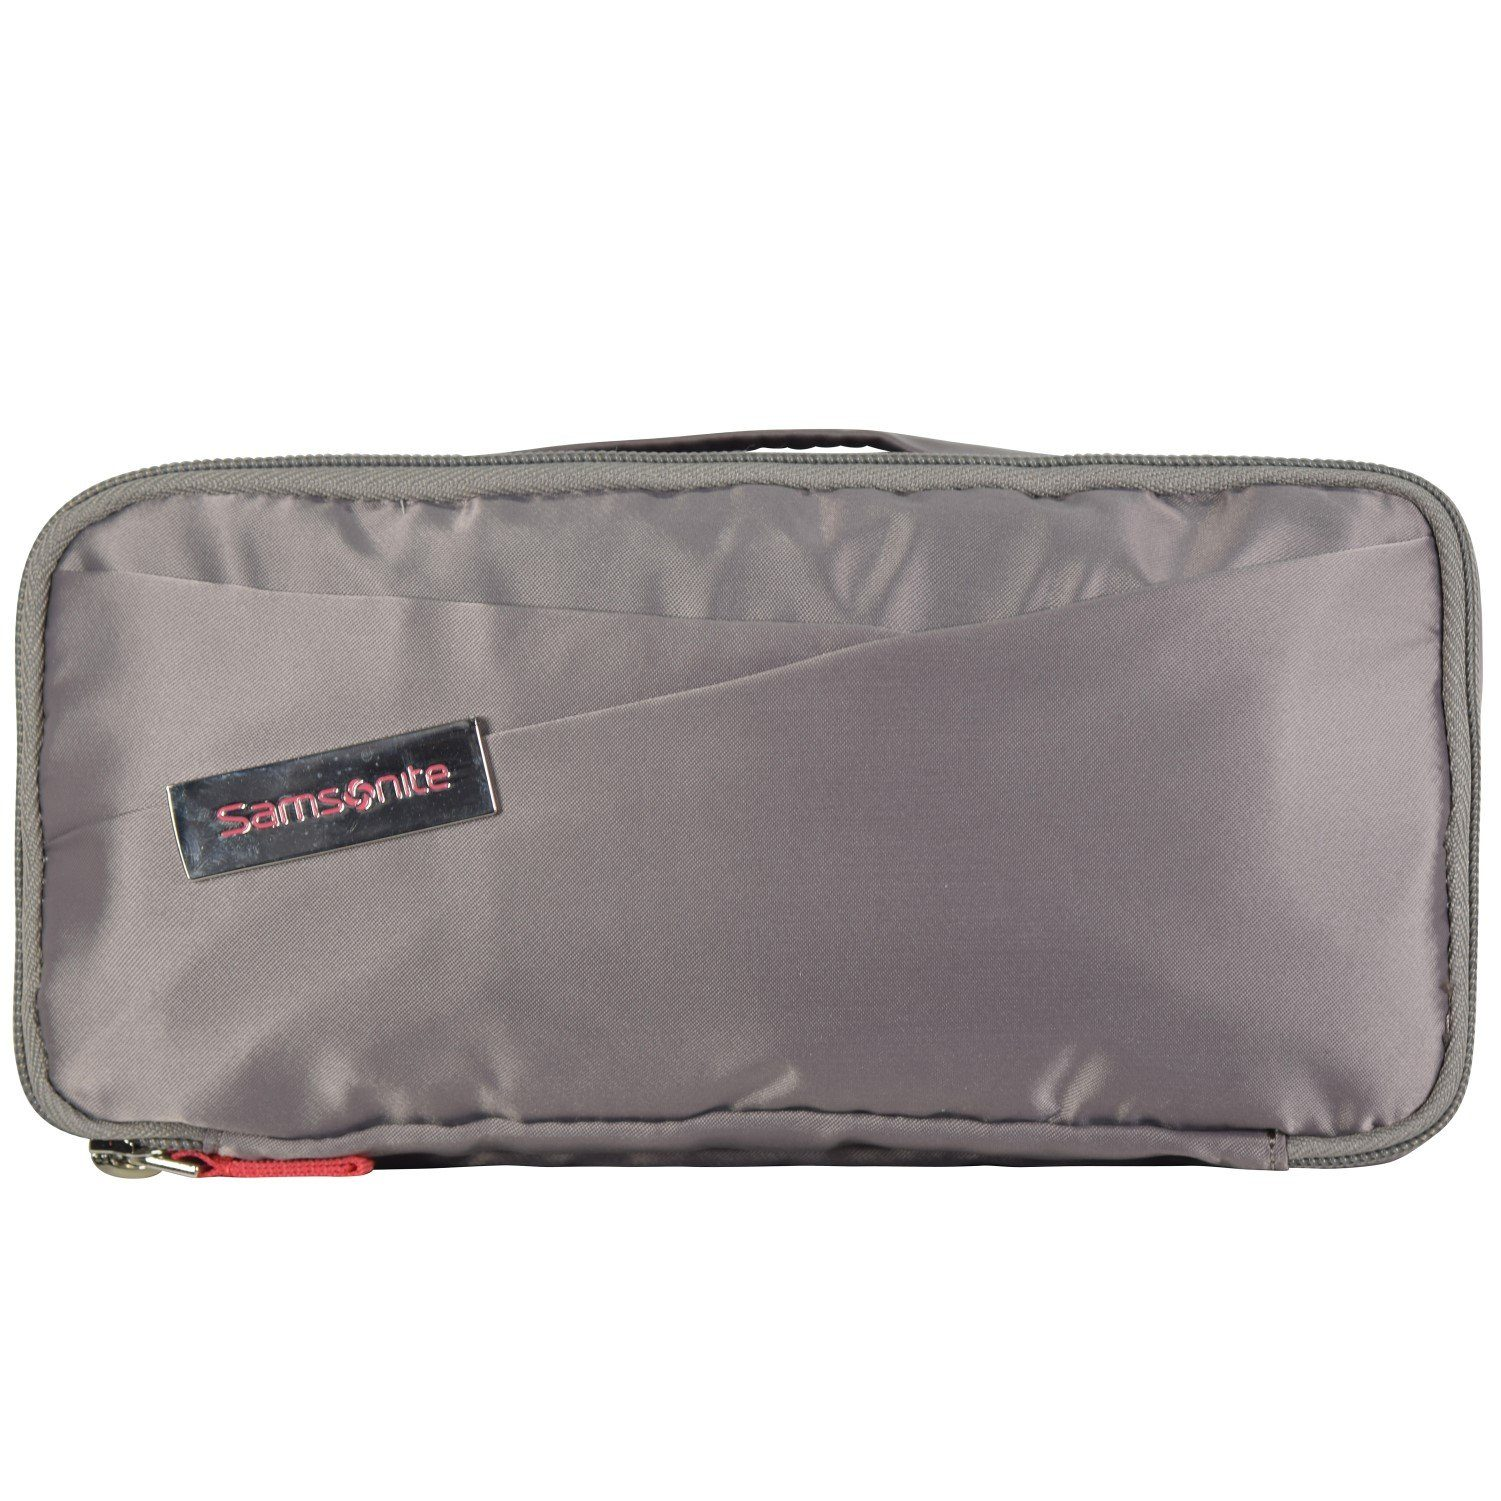 Samsonite Travel Accessories Kulturbeutel 22 cm